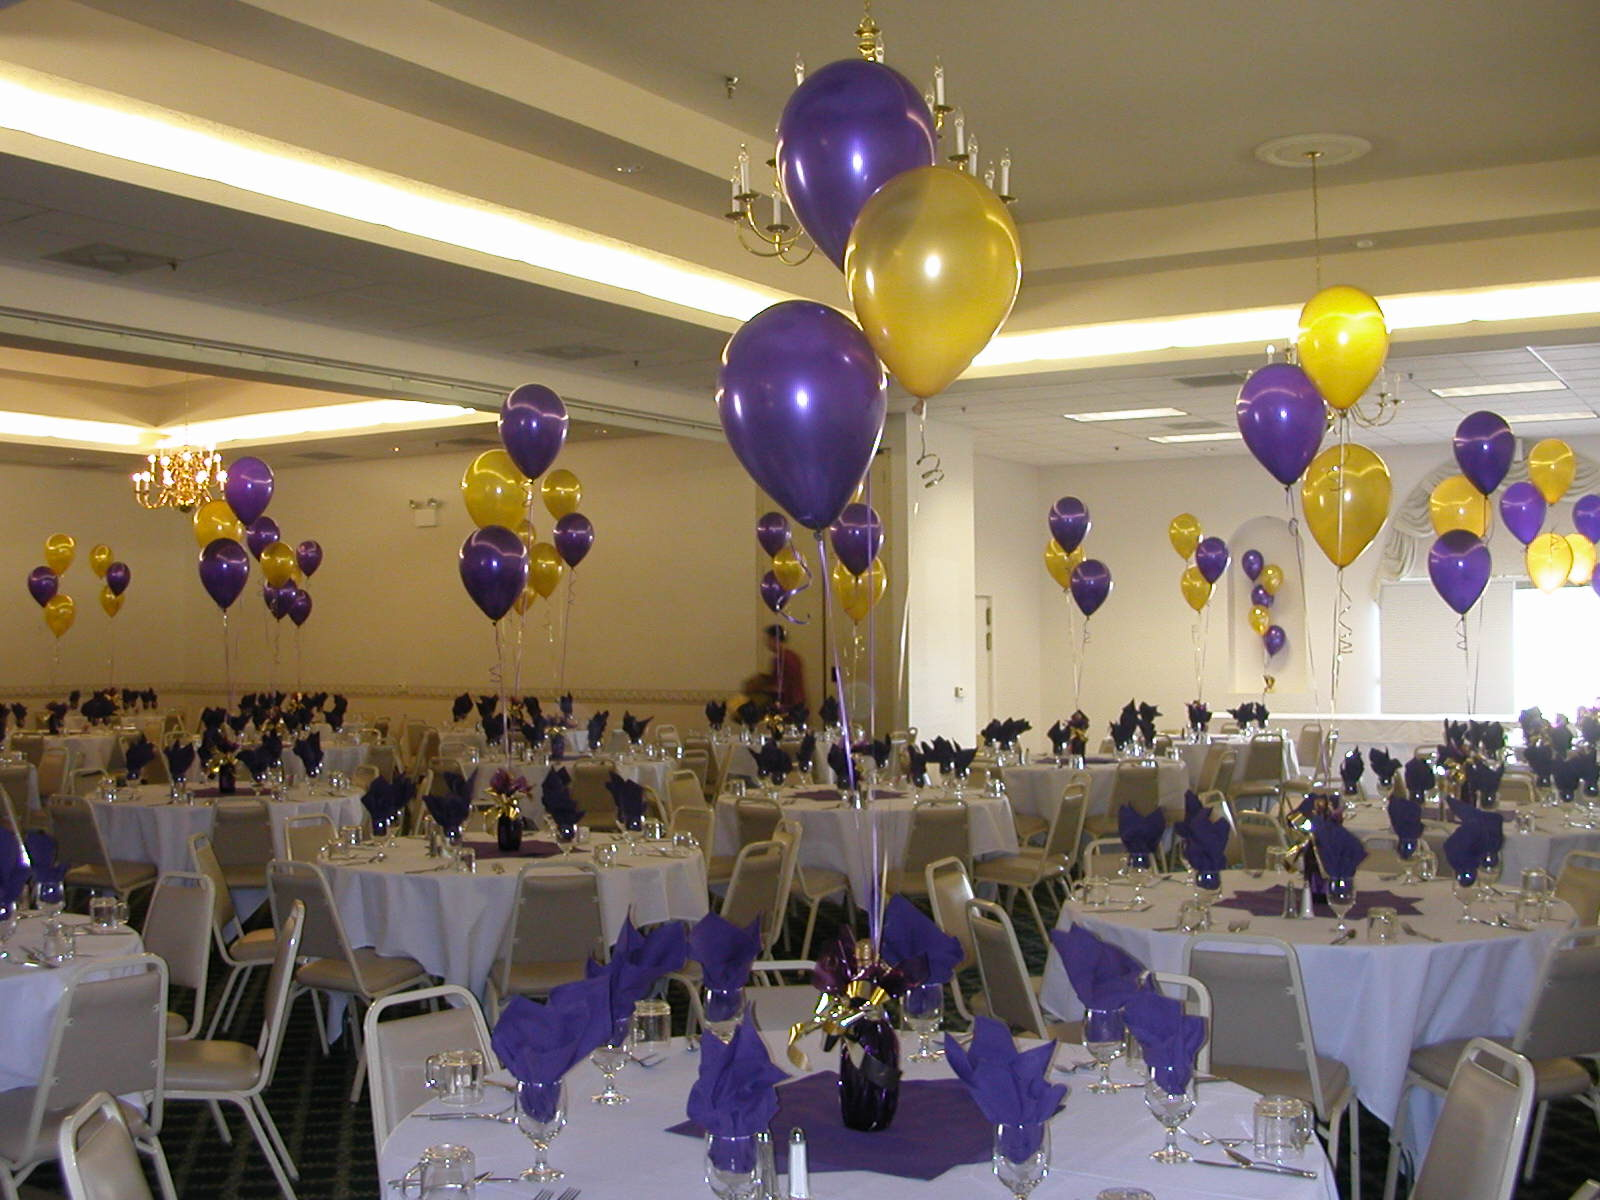 Balloon Decor of Central California - centerpiece